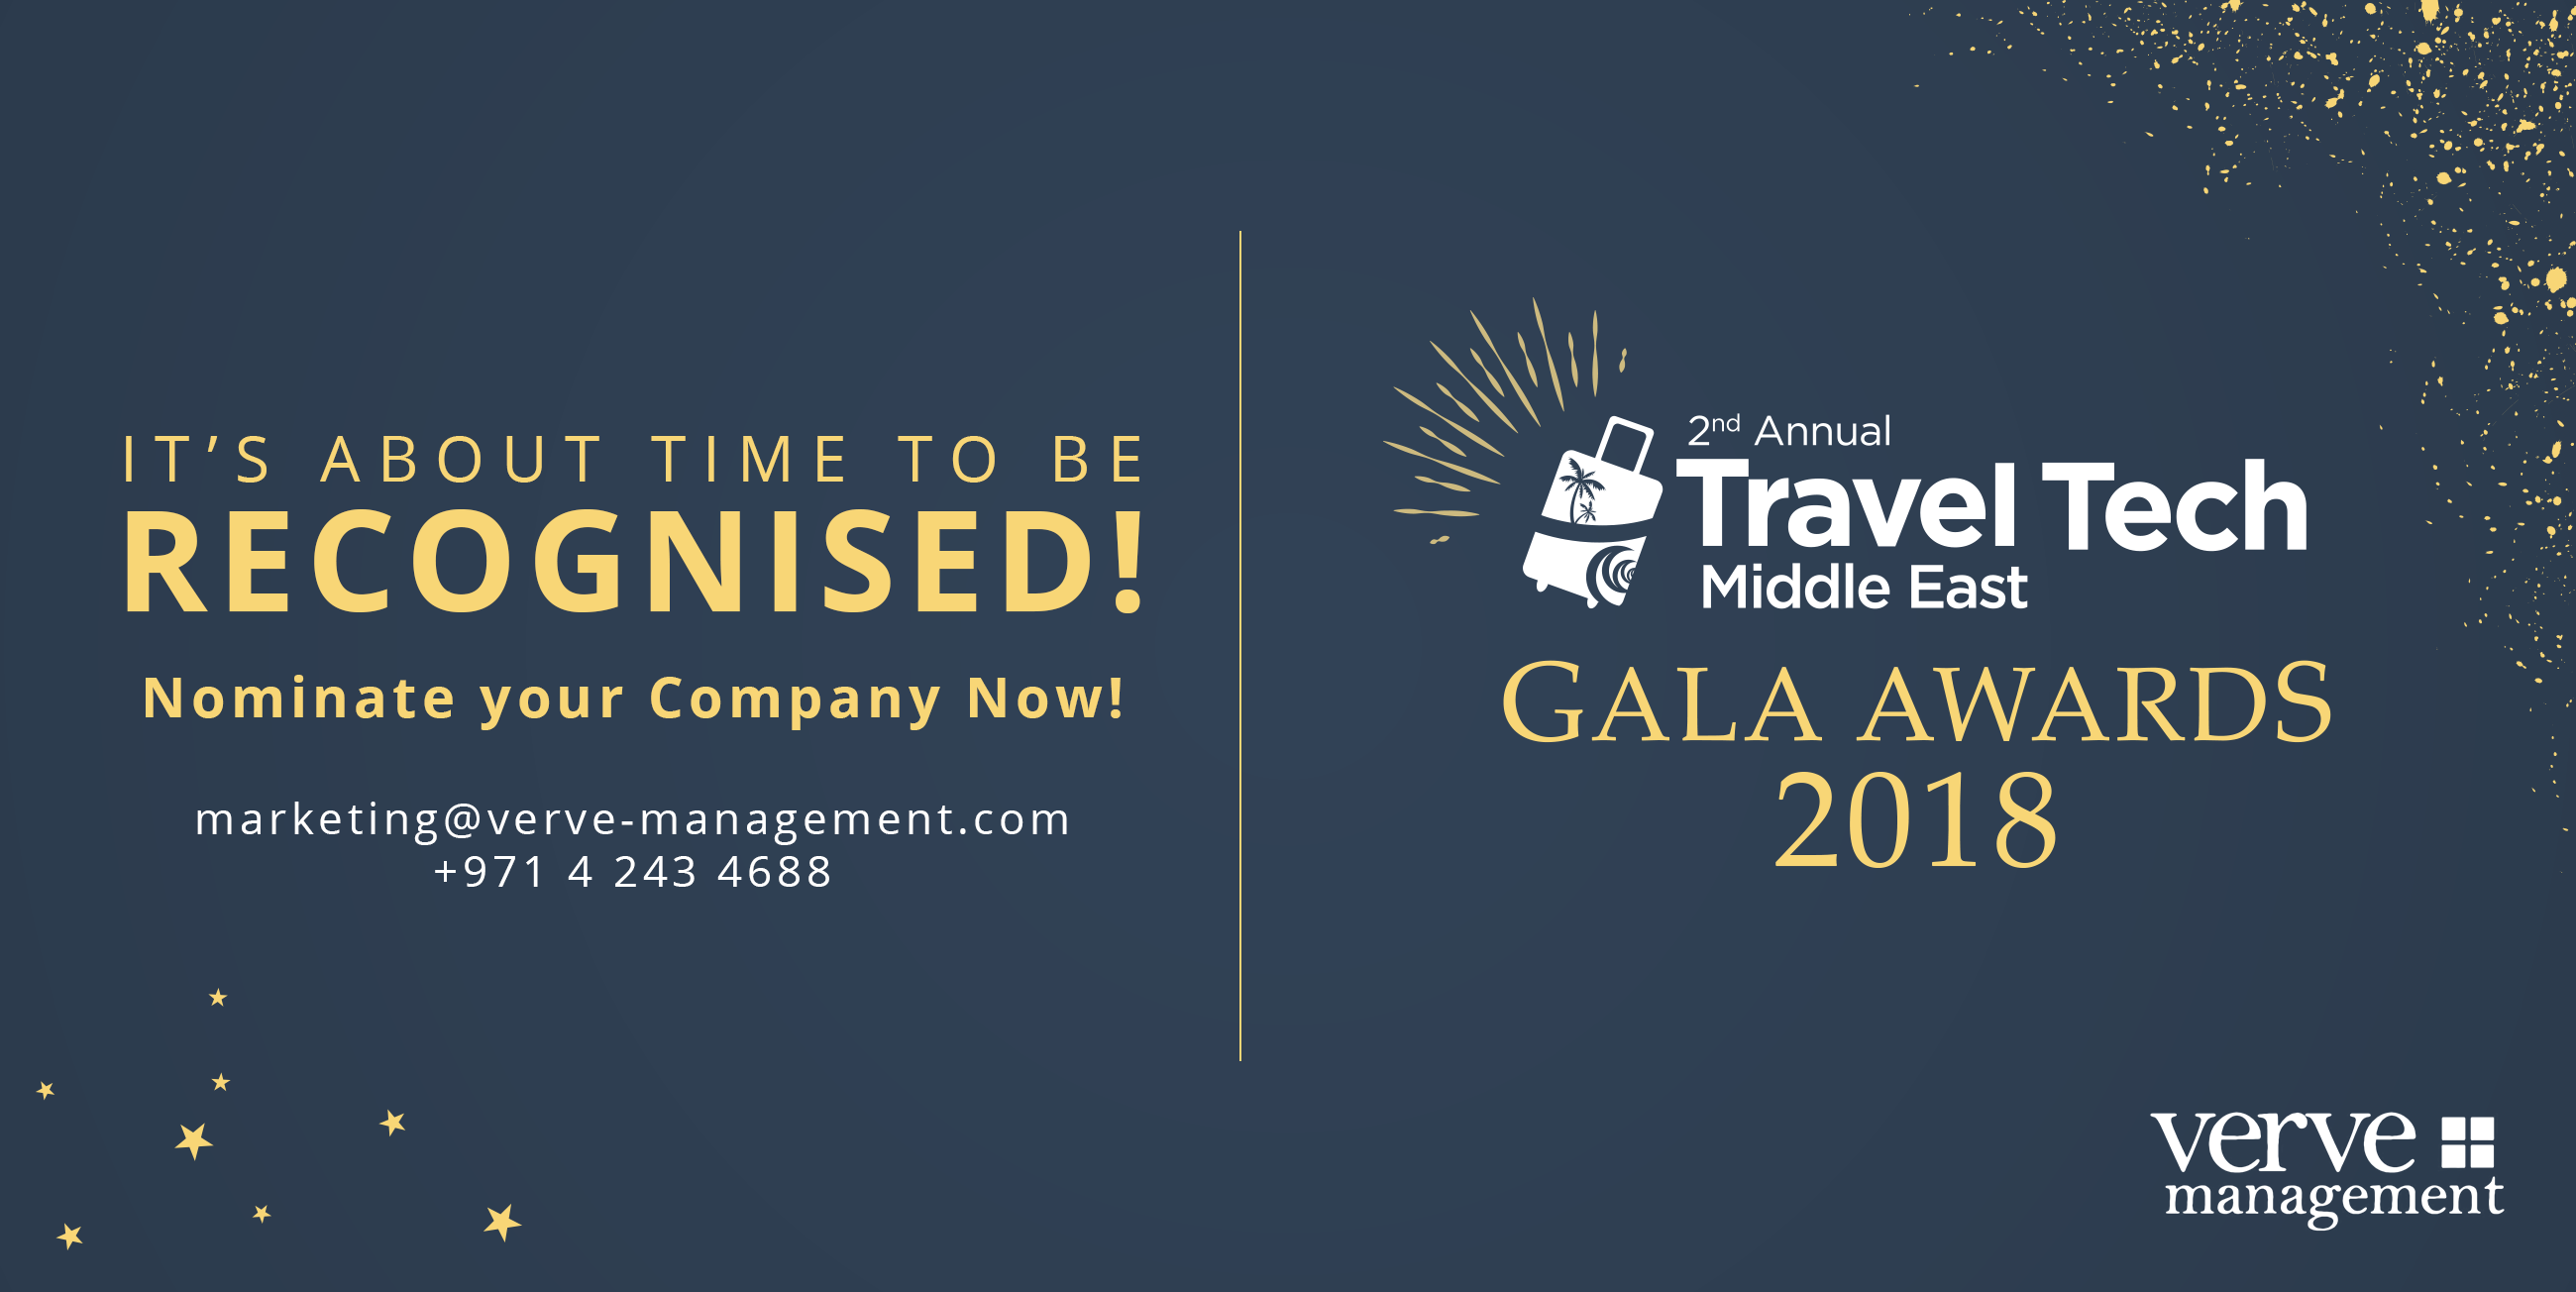 Travel Tech Gala Awards 2018 launched in Dubai